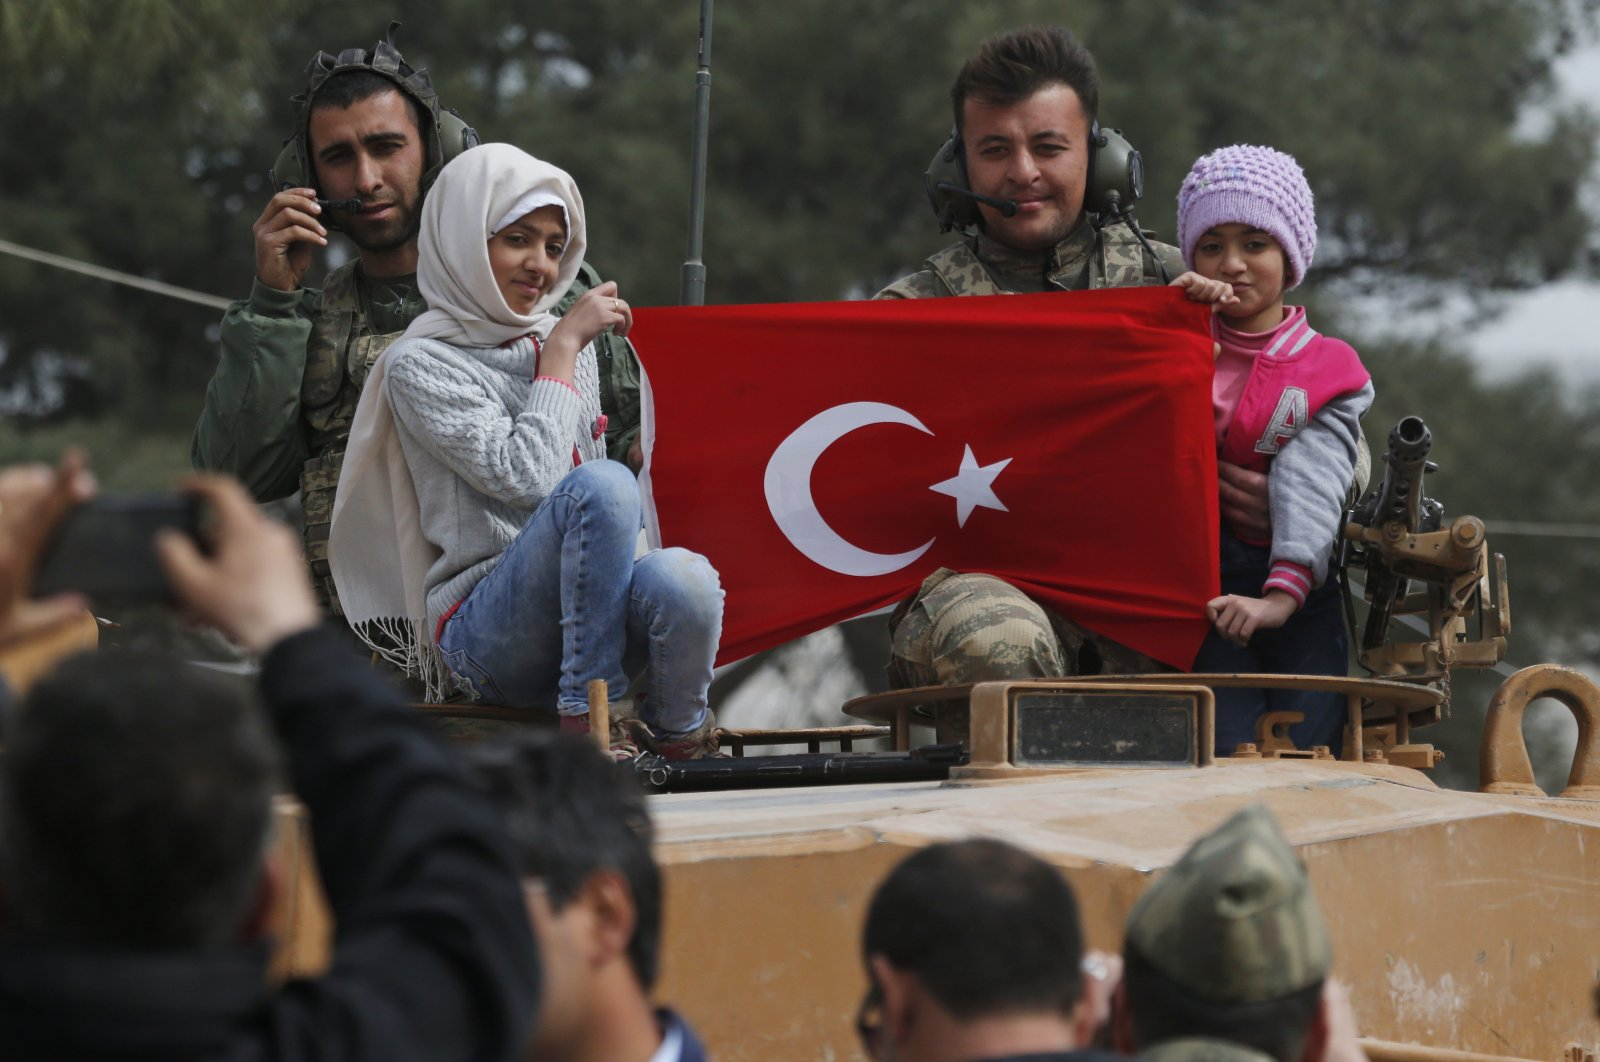 Turkish soldiers atop a tank pose for photos with Syrian children holding a Turkish flag, in the northwestern city of Afrin, Syria, March 24, 2018. (AP Photo)